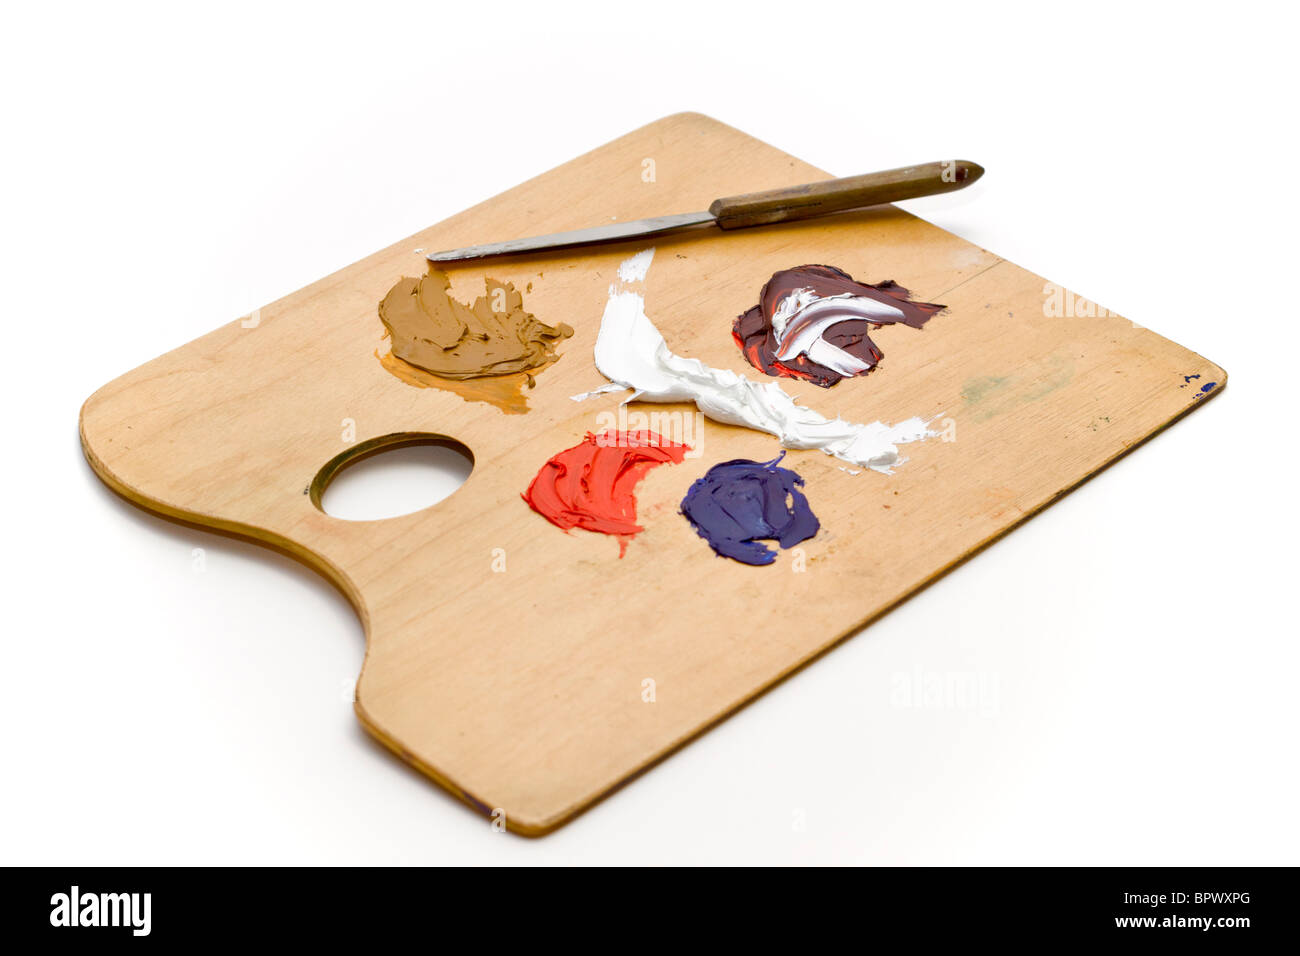 Artists palette with oil paints and palette knife on a white background - Stock Image